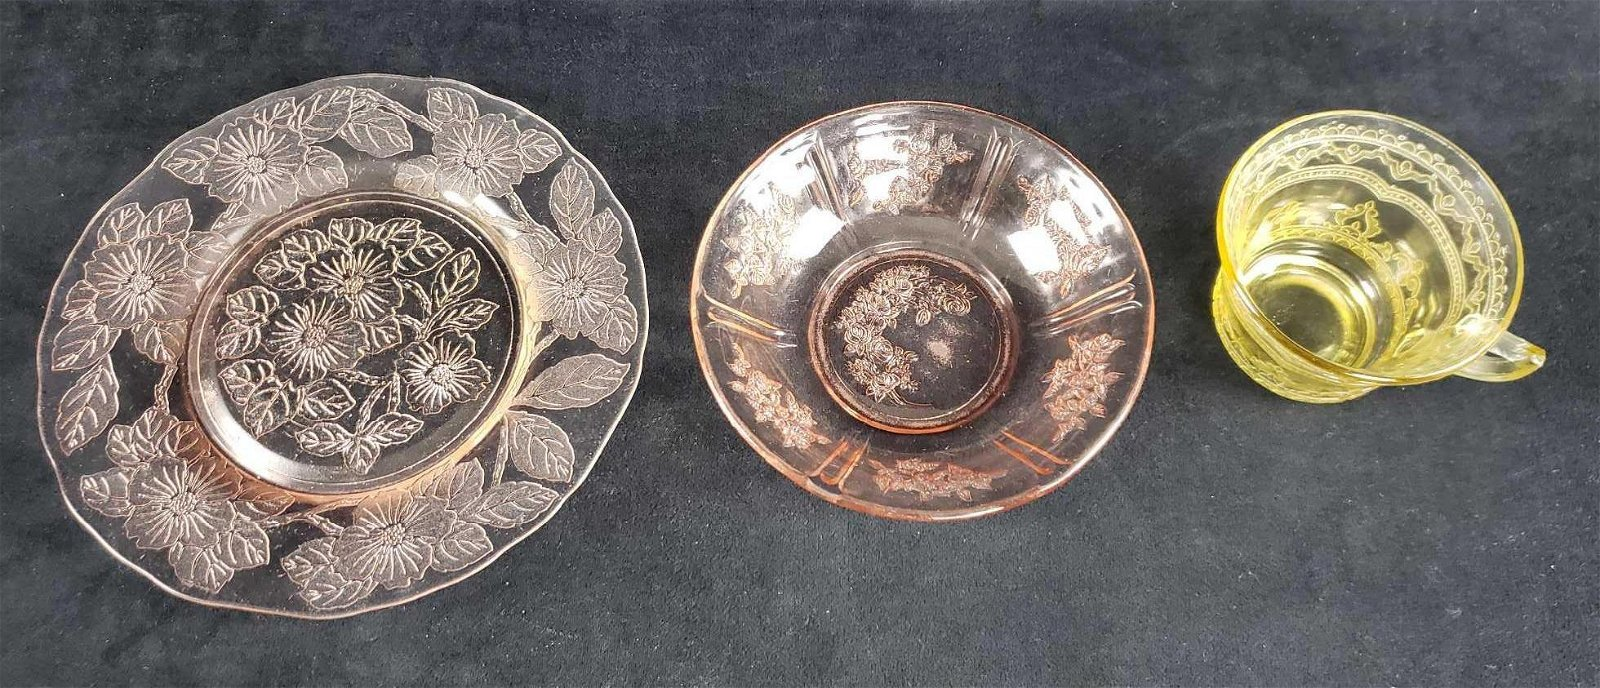 Set of 3 Etched Glass Items